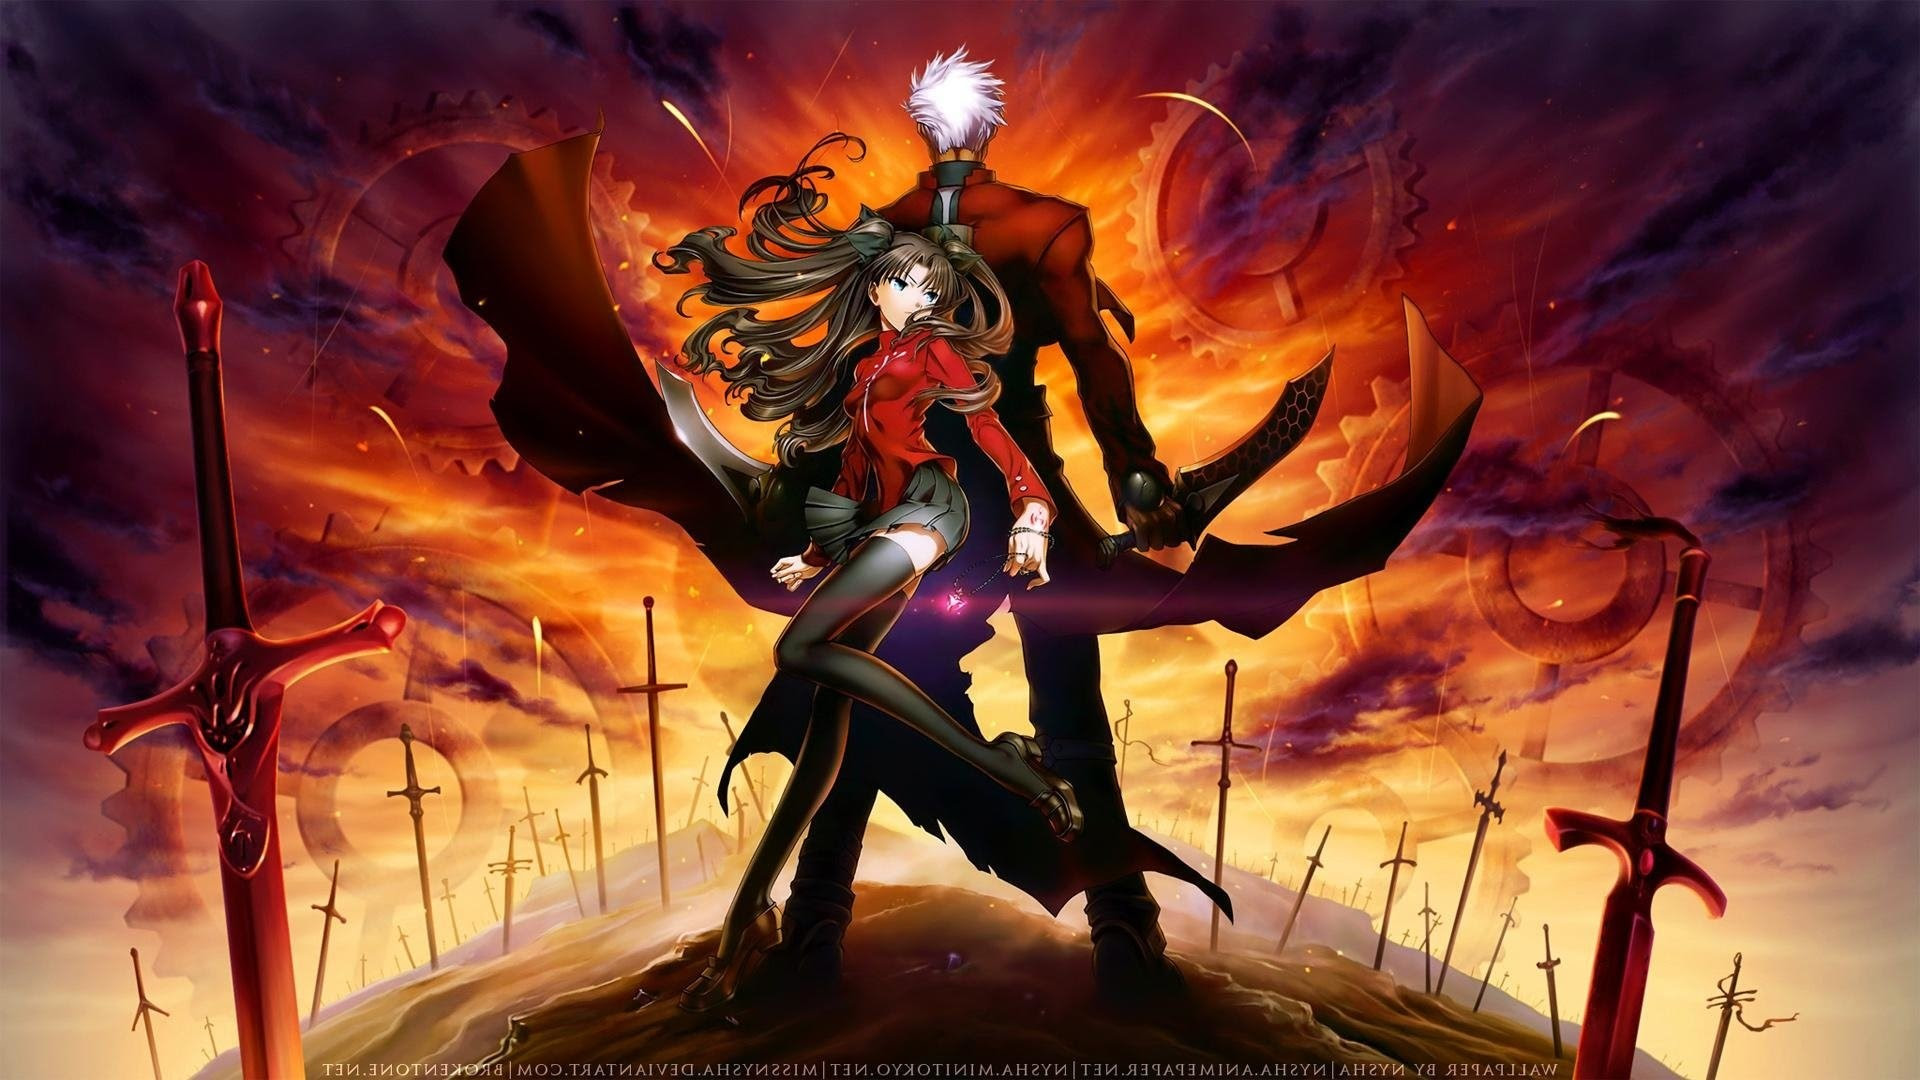 Unlimited Blade Works Wallpaper 83 Images